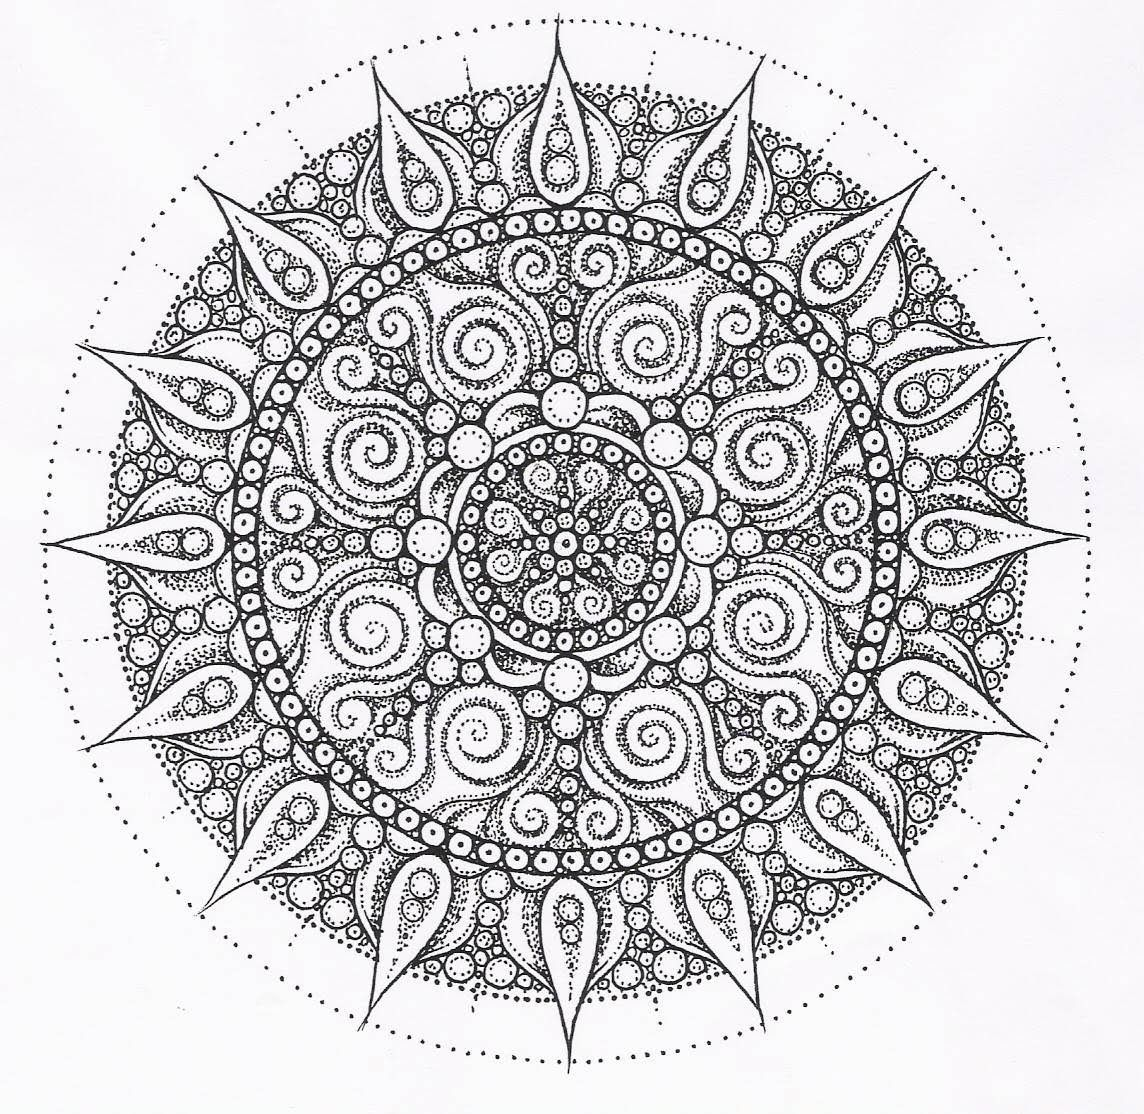 Free mandala coloring pages to print - Center Yourself With Mandalas Coloring Pages